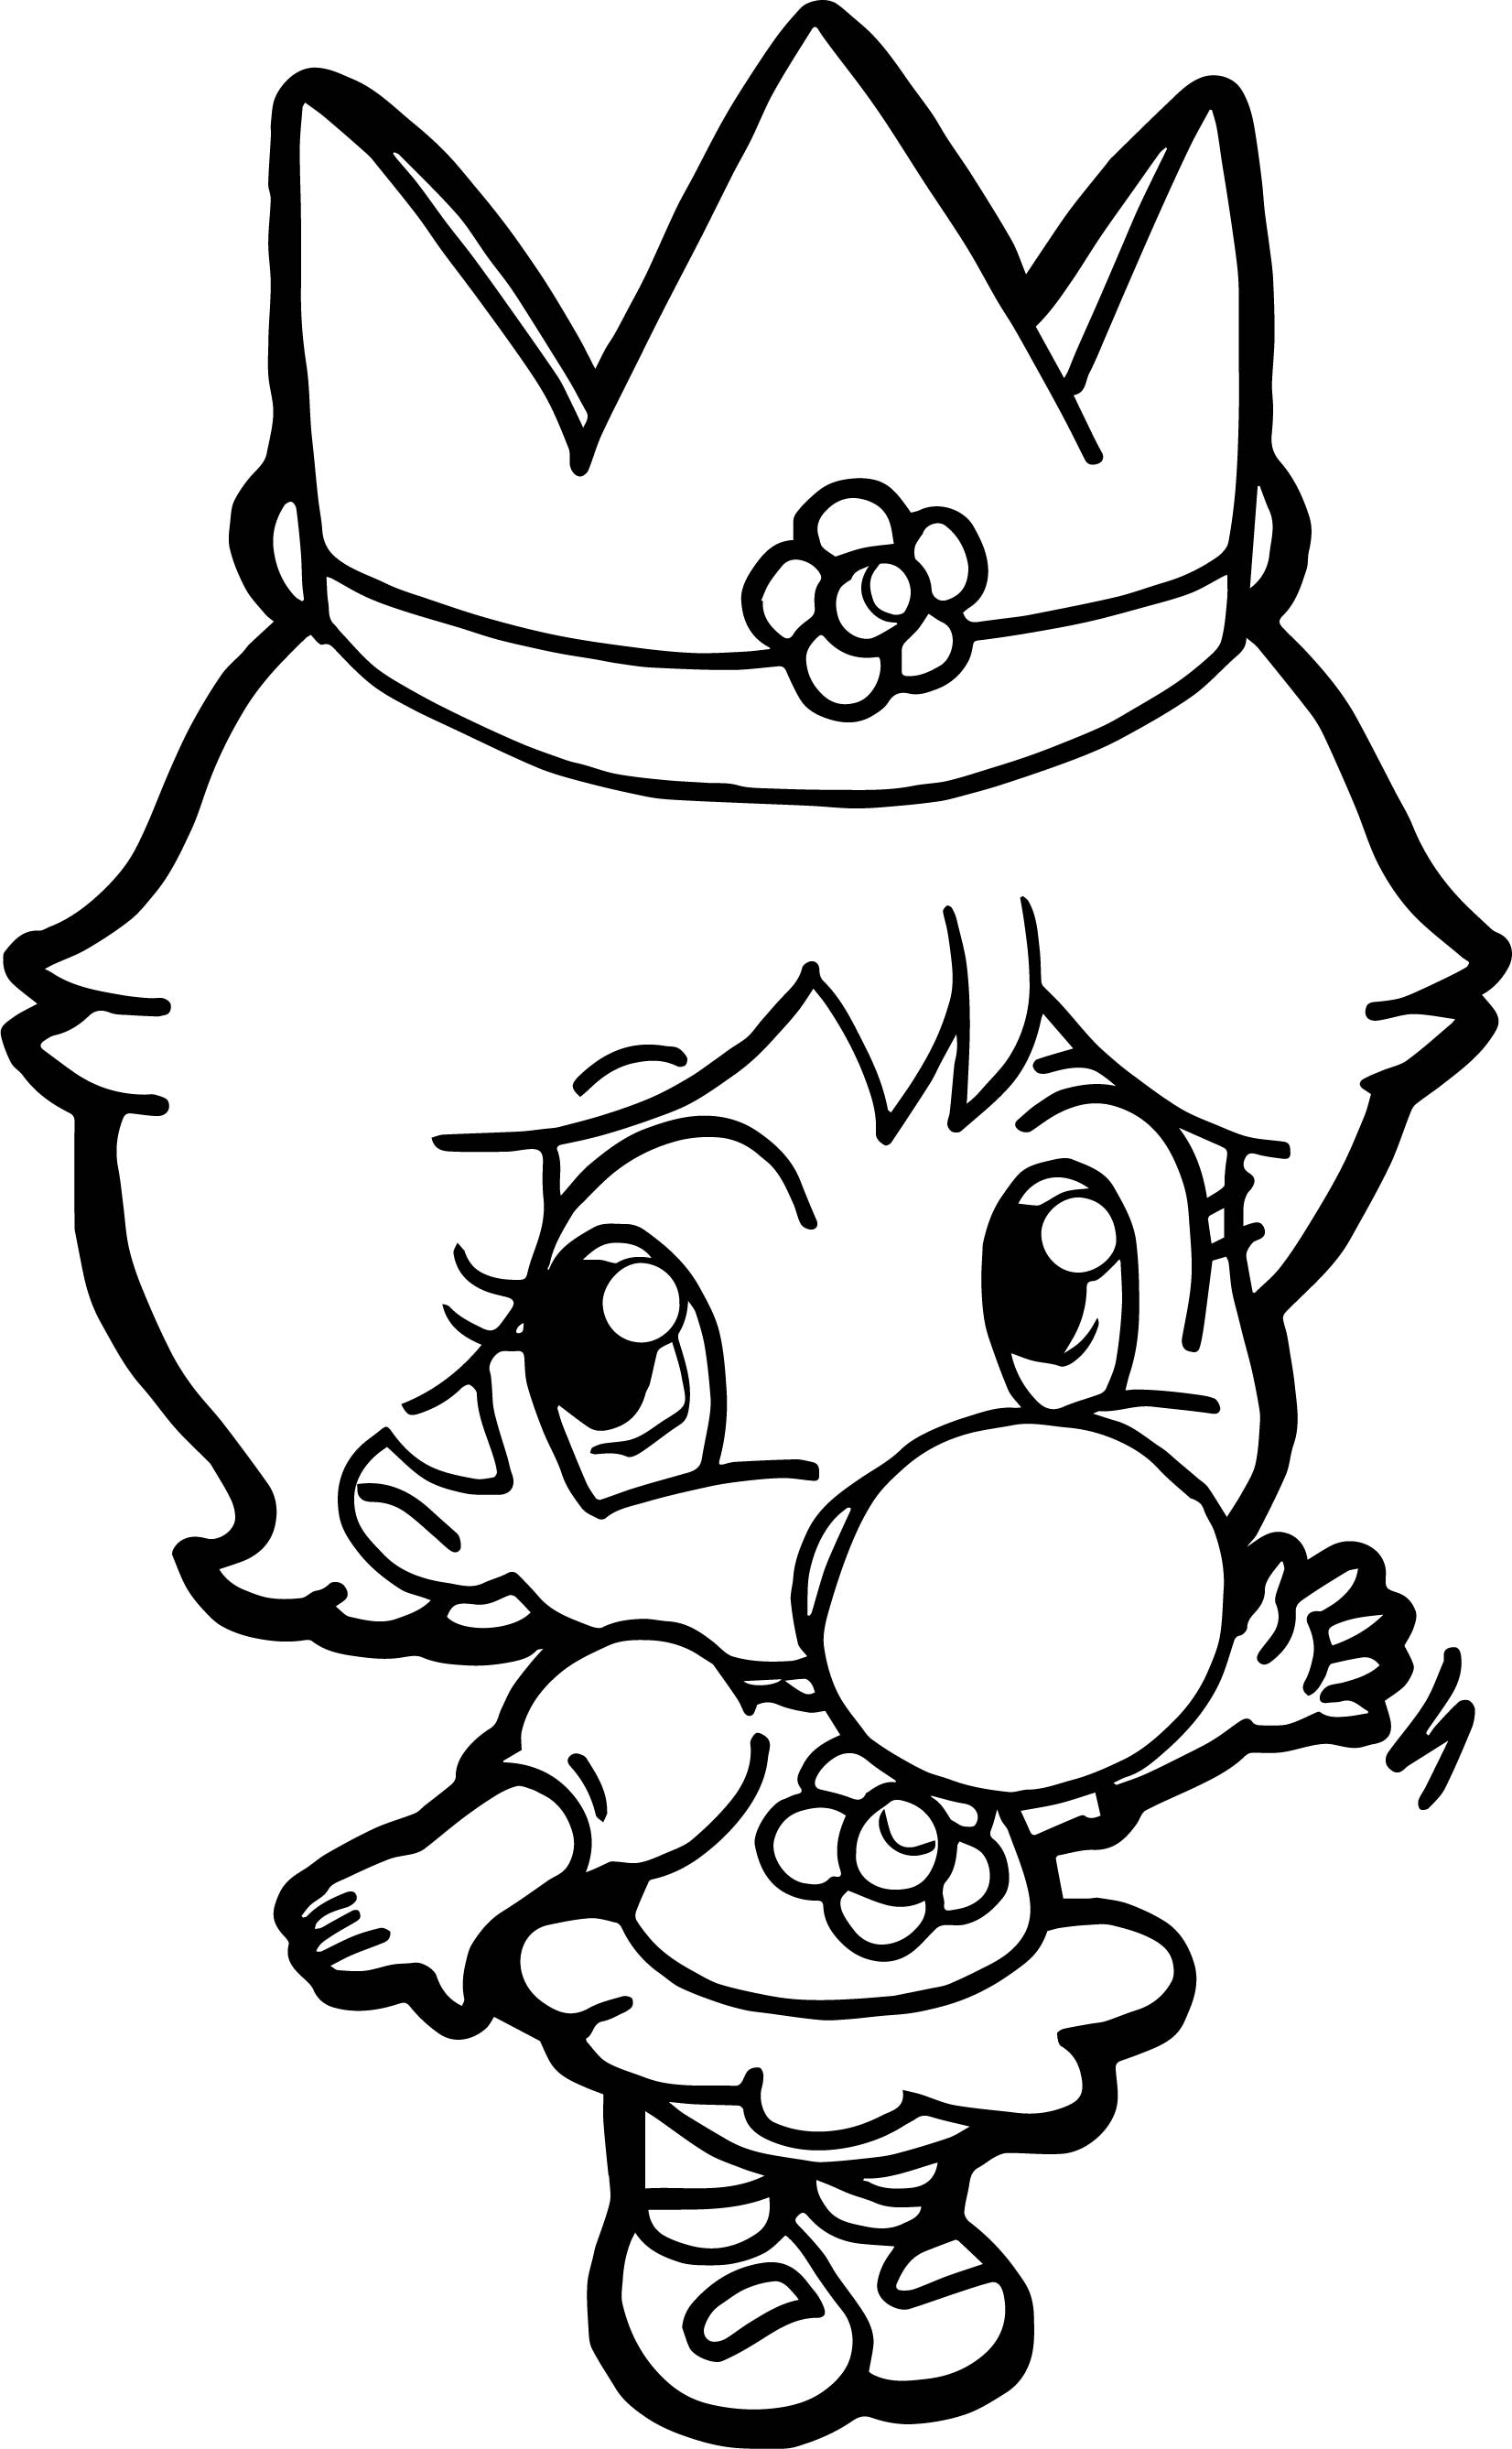 mario coloring pages as babies - photo#10